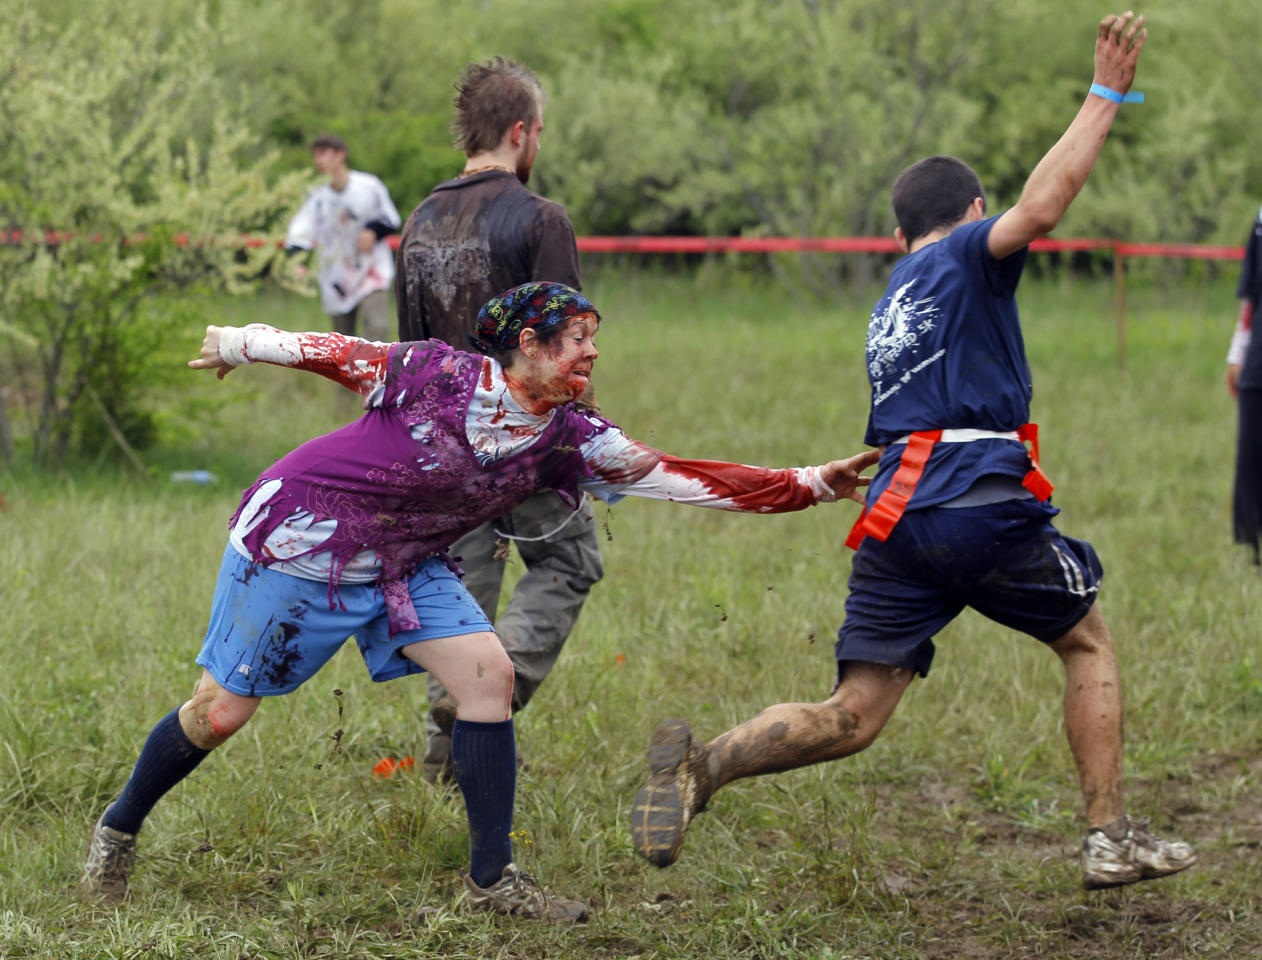 'Zombies' chase runners through obstacle course